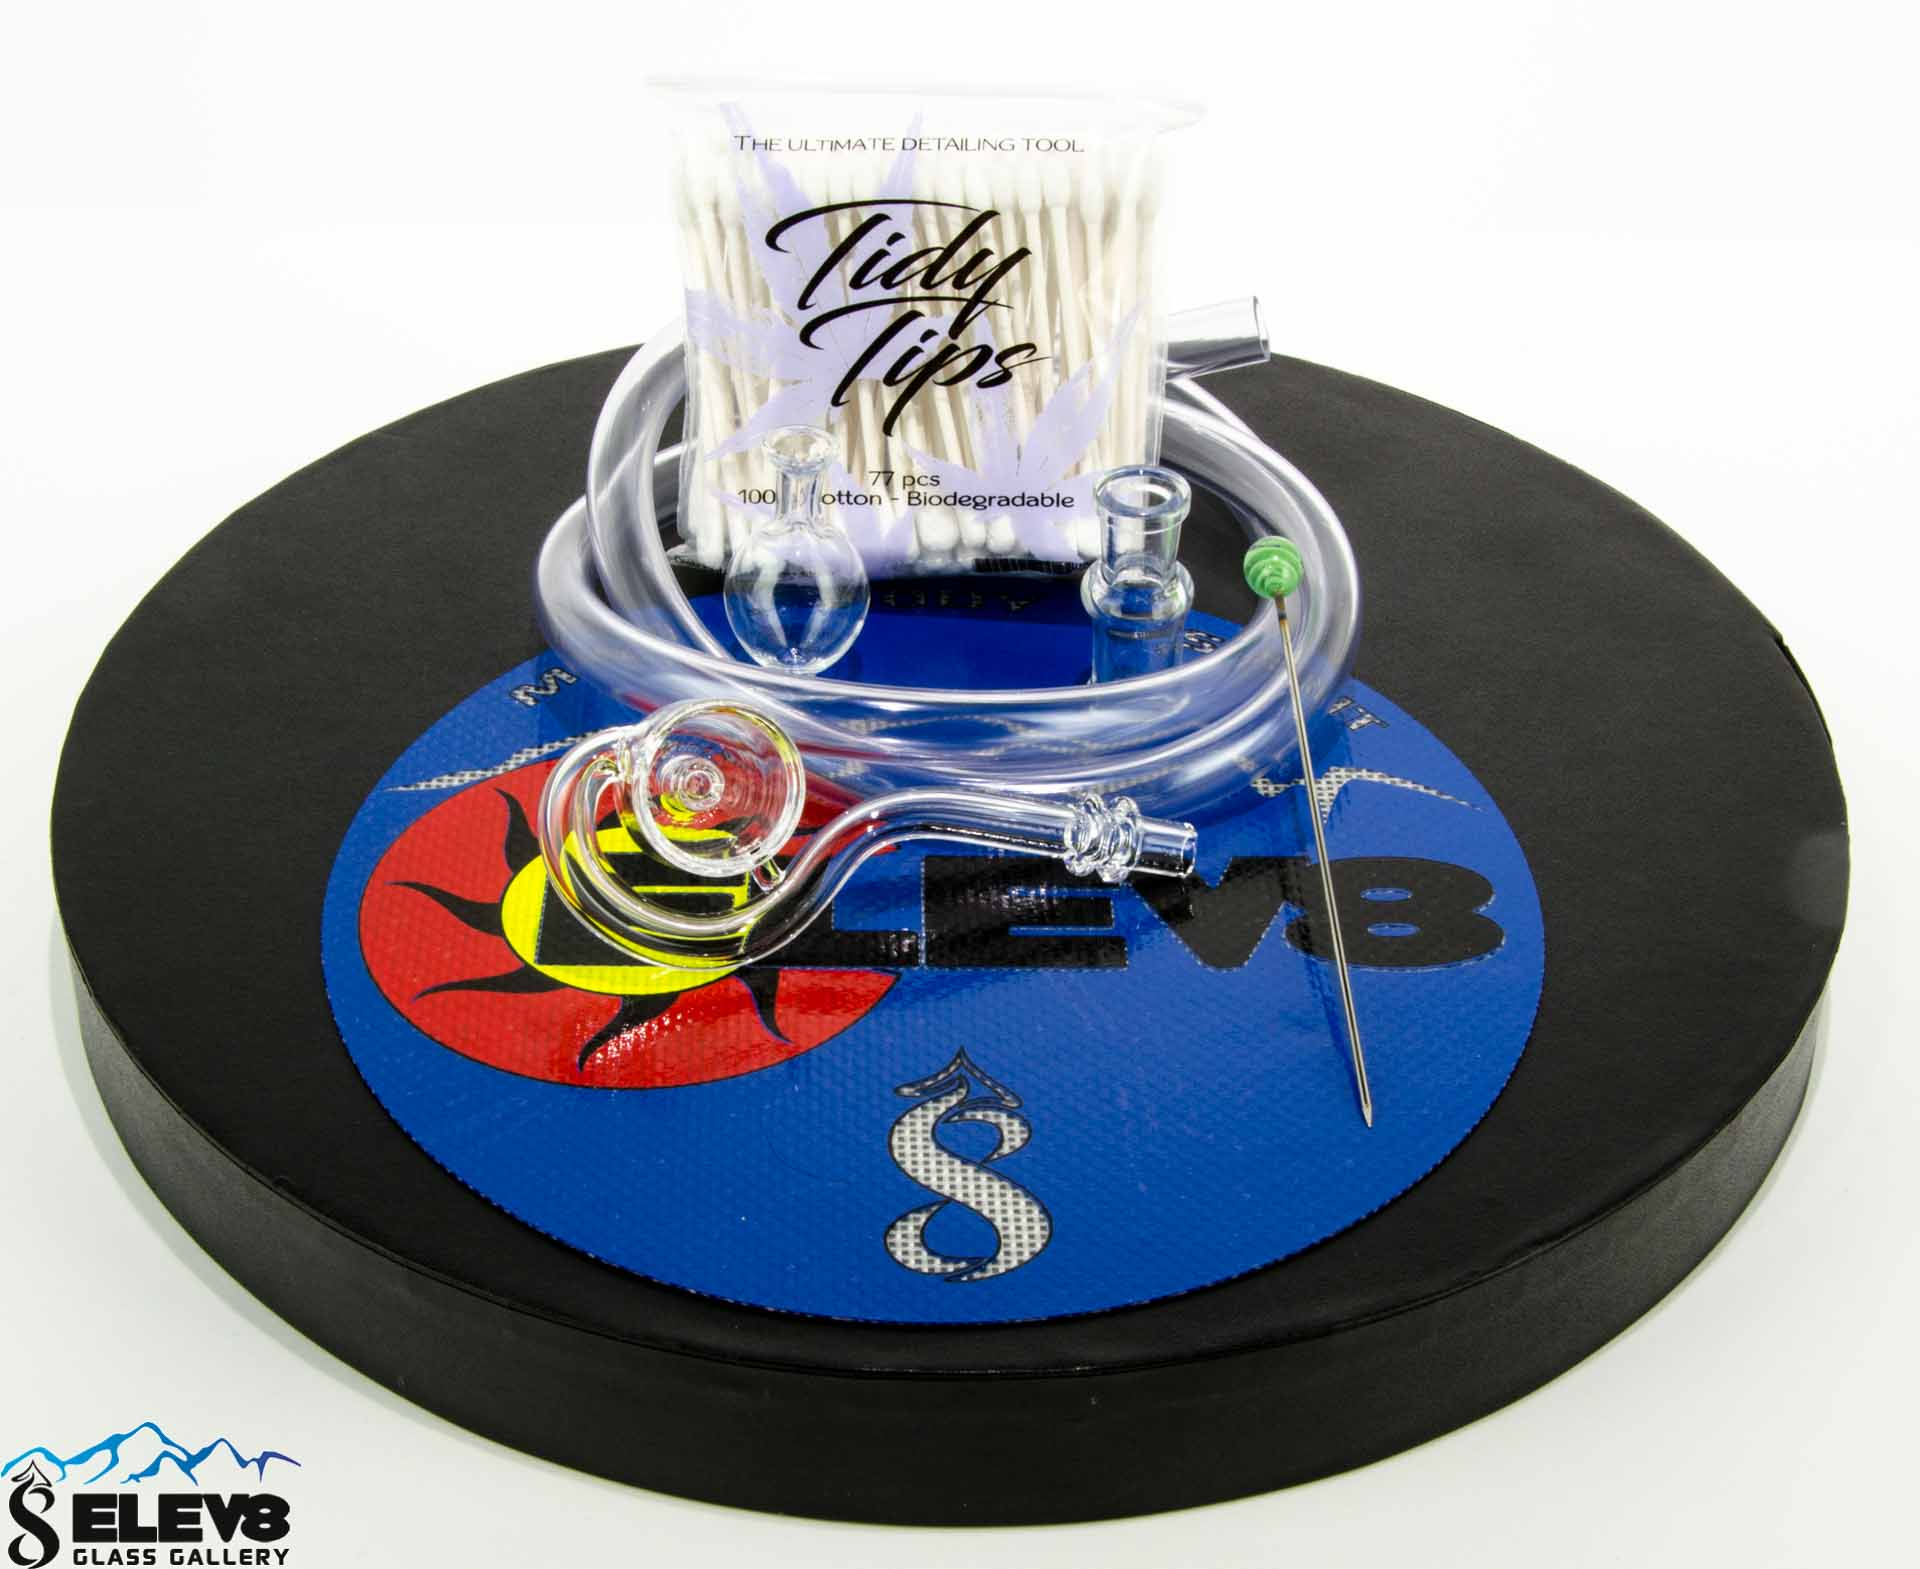 Silver Surfer SSV Oil Kits (EOK) silver surfer, ssv, oil kit, wax, extracts, 7th floor, ssv vaporizer, eok,